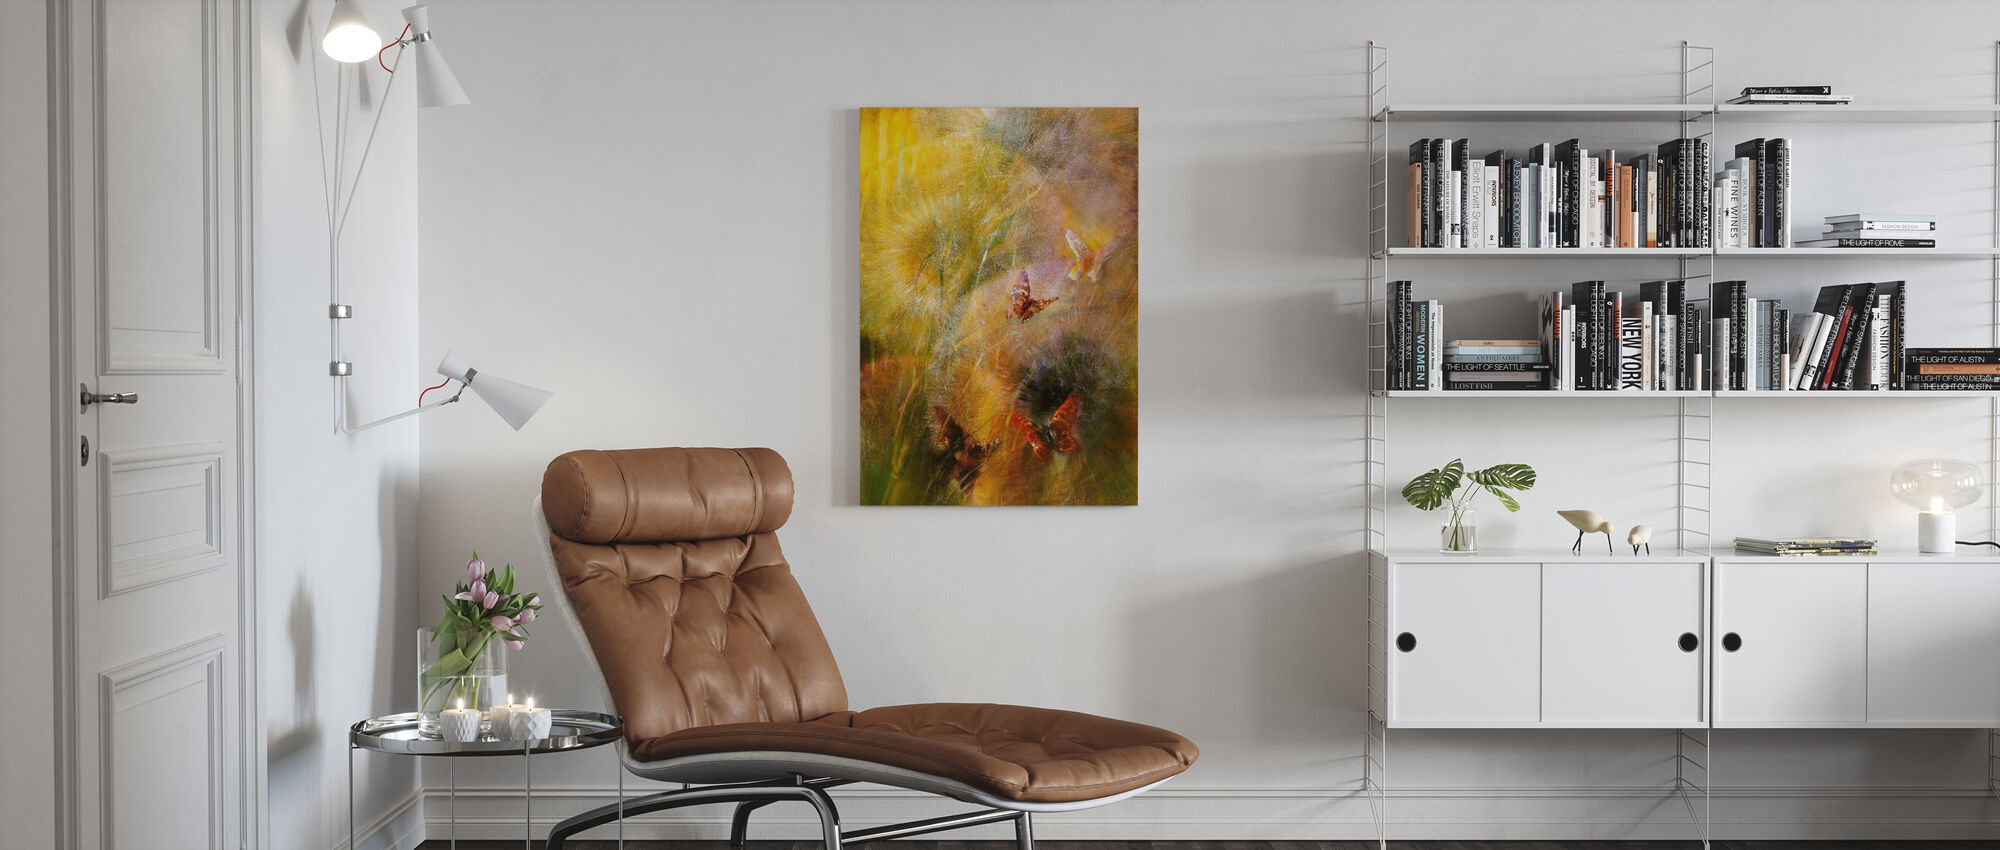 Enchants - Canvas print - Living Room